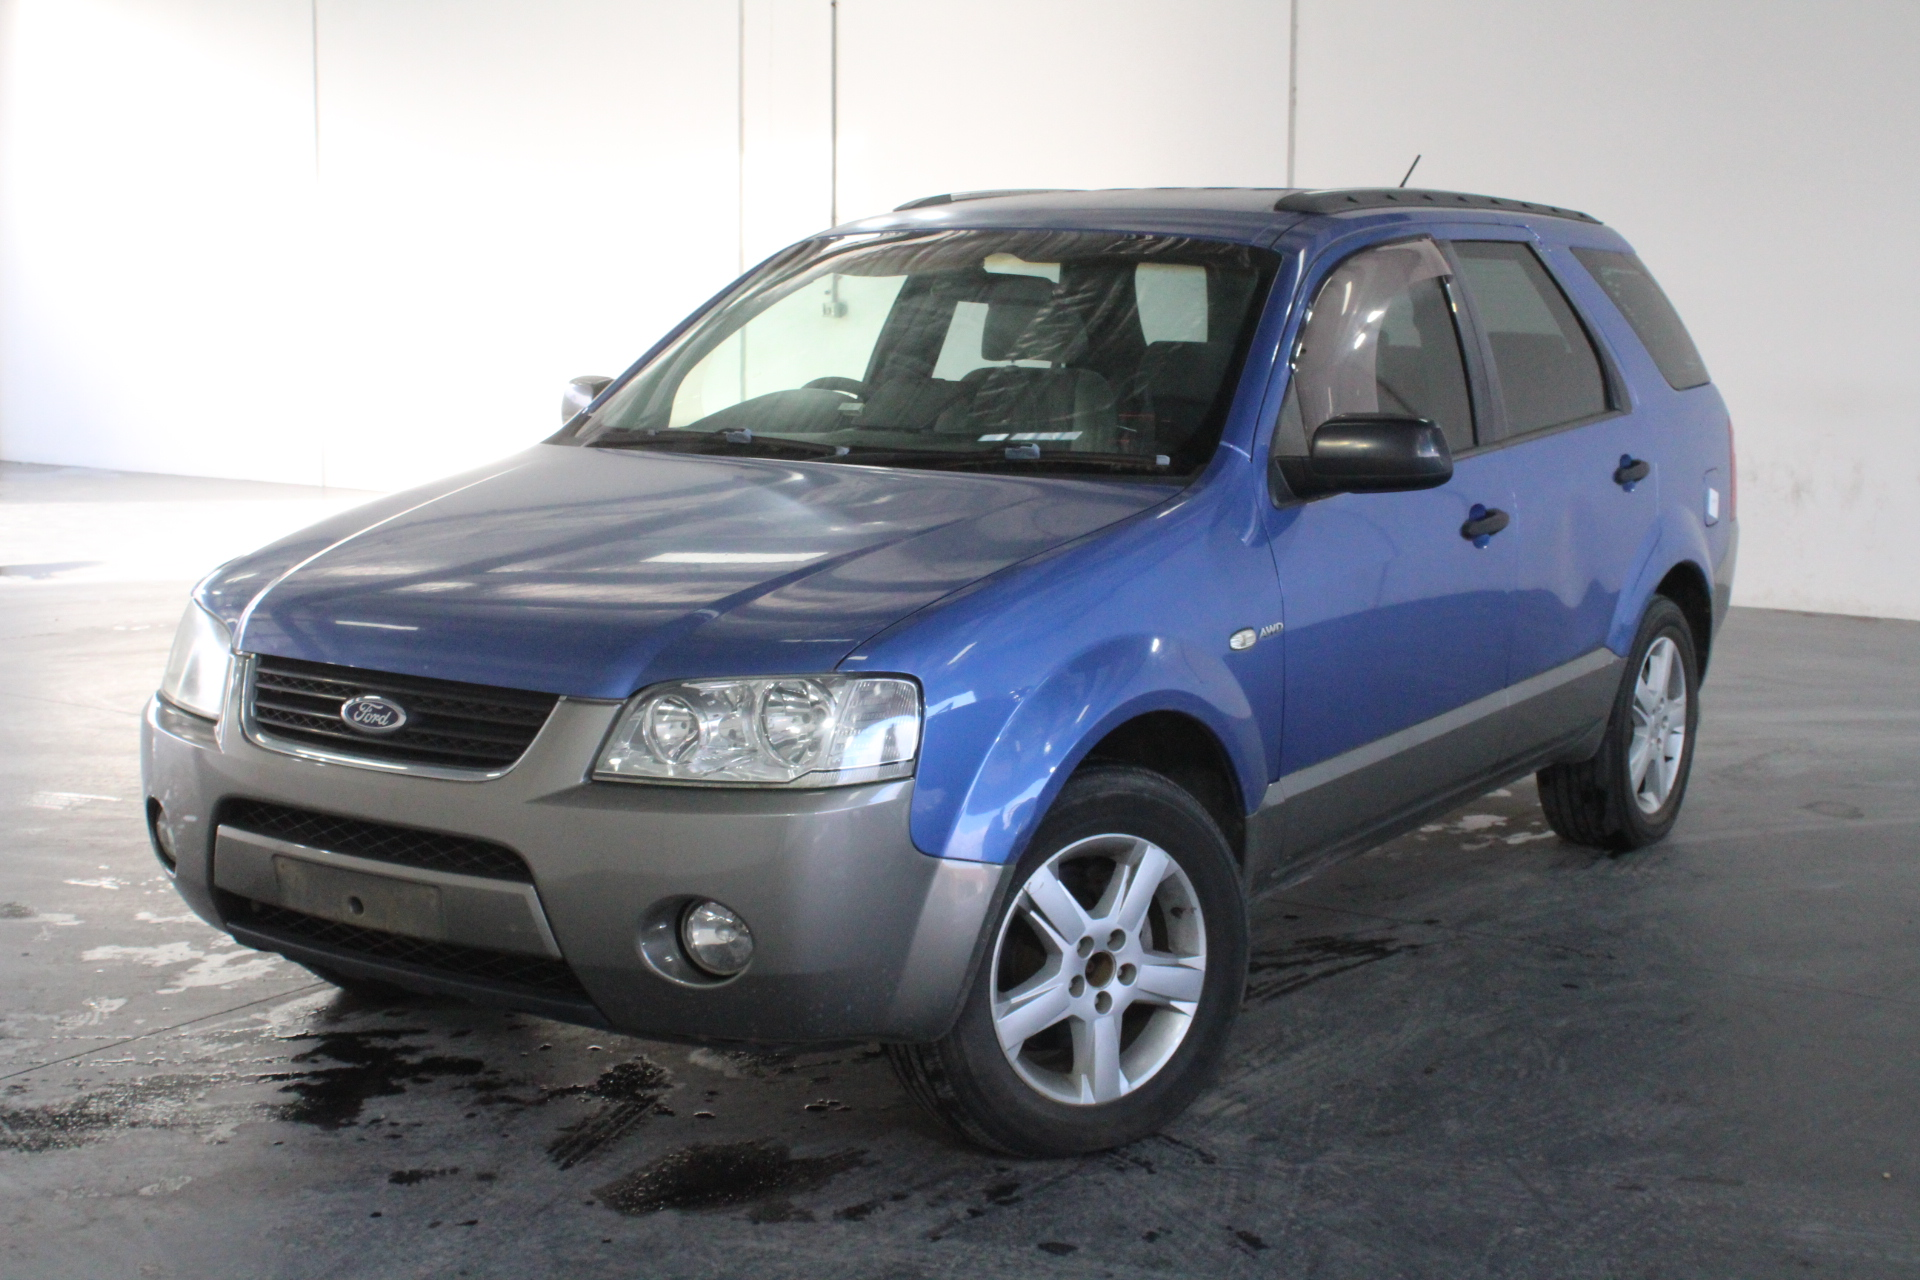 2004 Ford Territory TS (4x4) SX Automatic 7 Seats Wagon